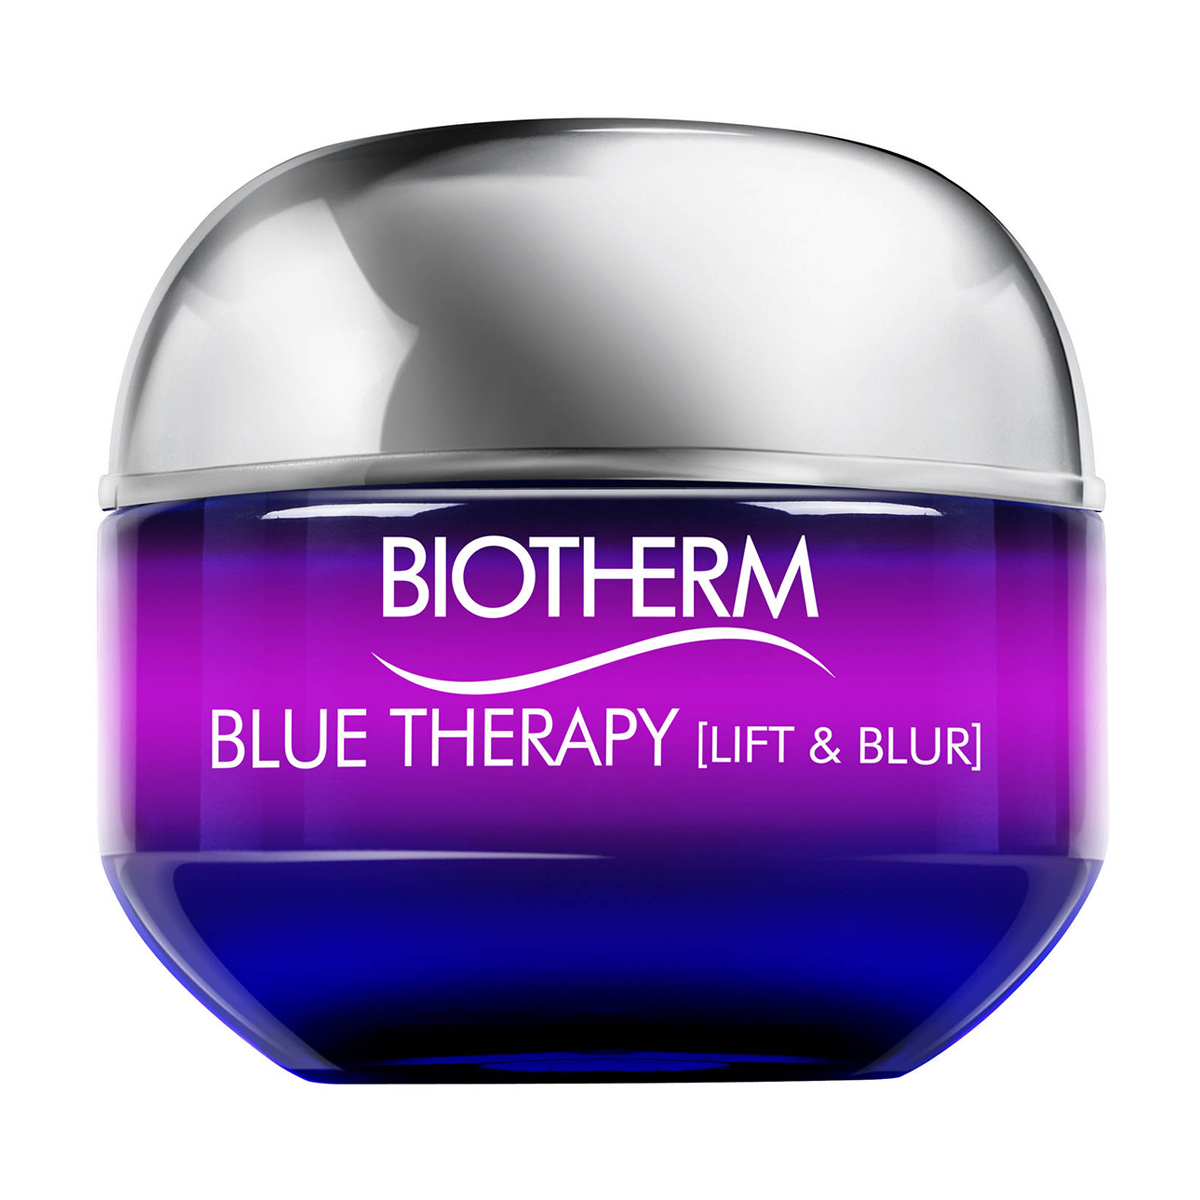 Biotherm - Blue Therapy - [Lift & Blur] 50 ml